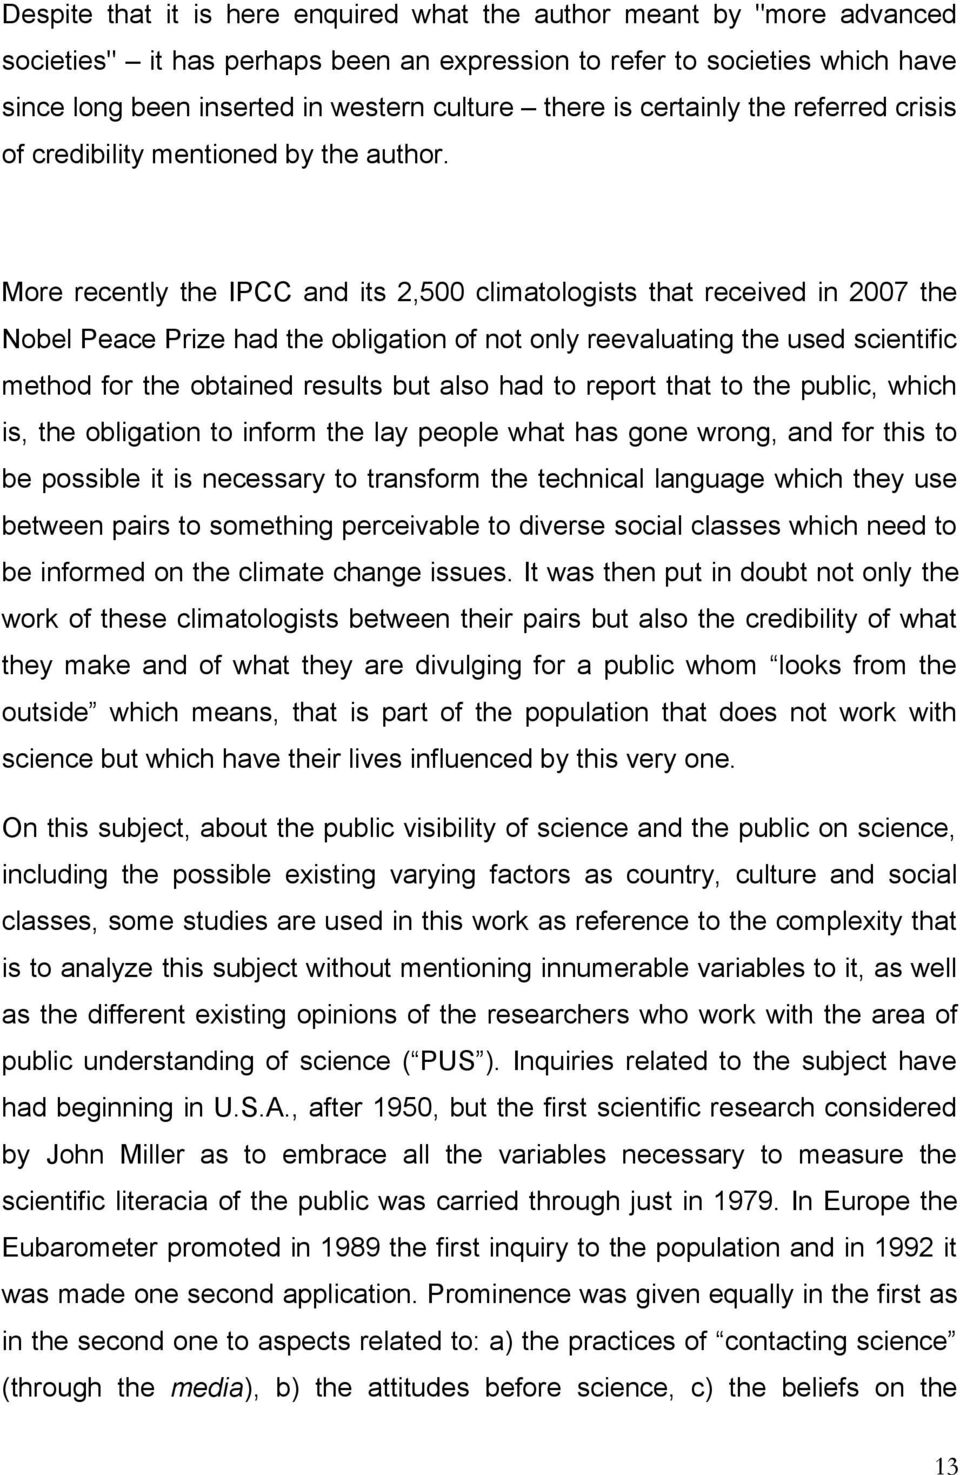 More recently the IPCC and its 2,500 climatologists that received in 2007 the Nobel Peace Prize had the obligation of not only reevaluating the used scientific method for the obtained results but